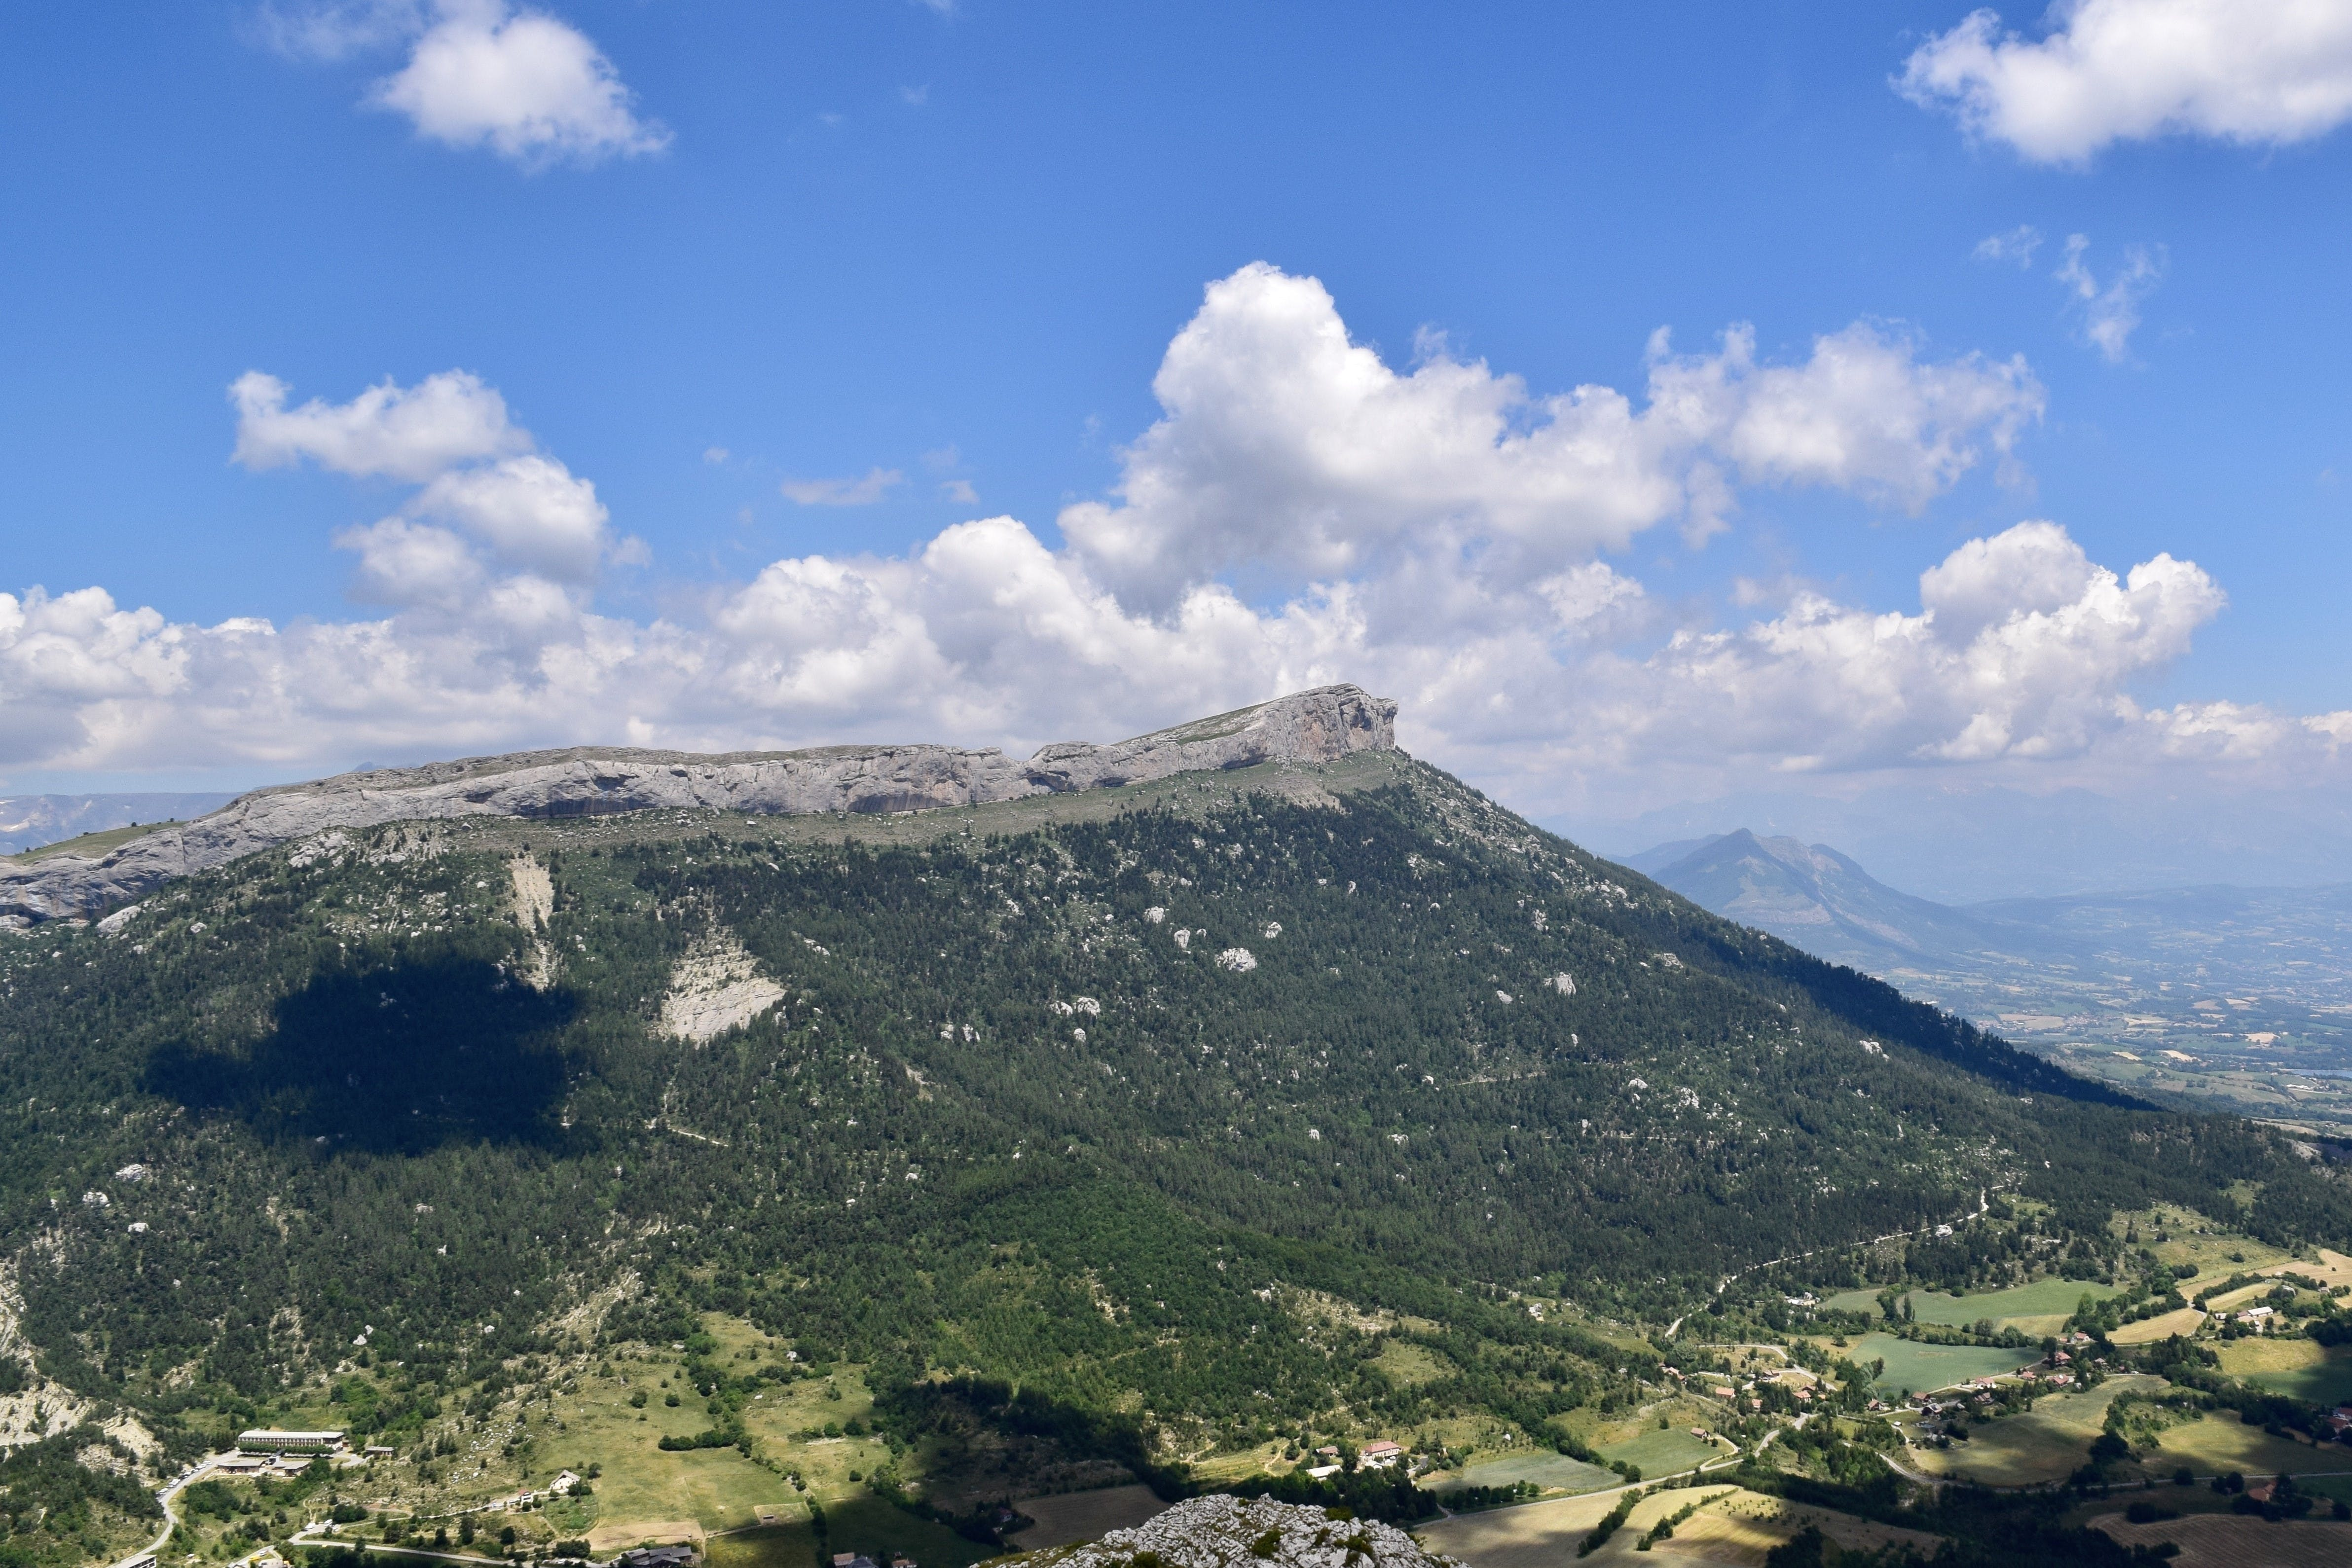 View of the Céüse mountain